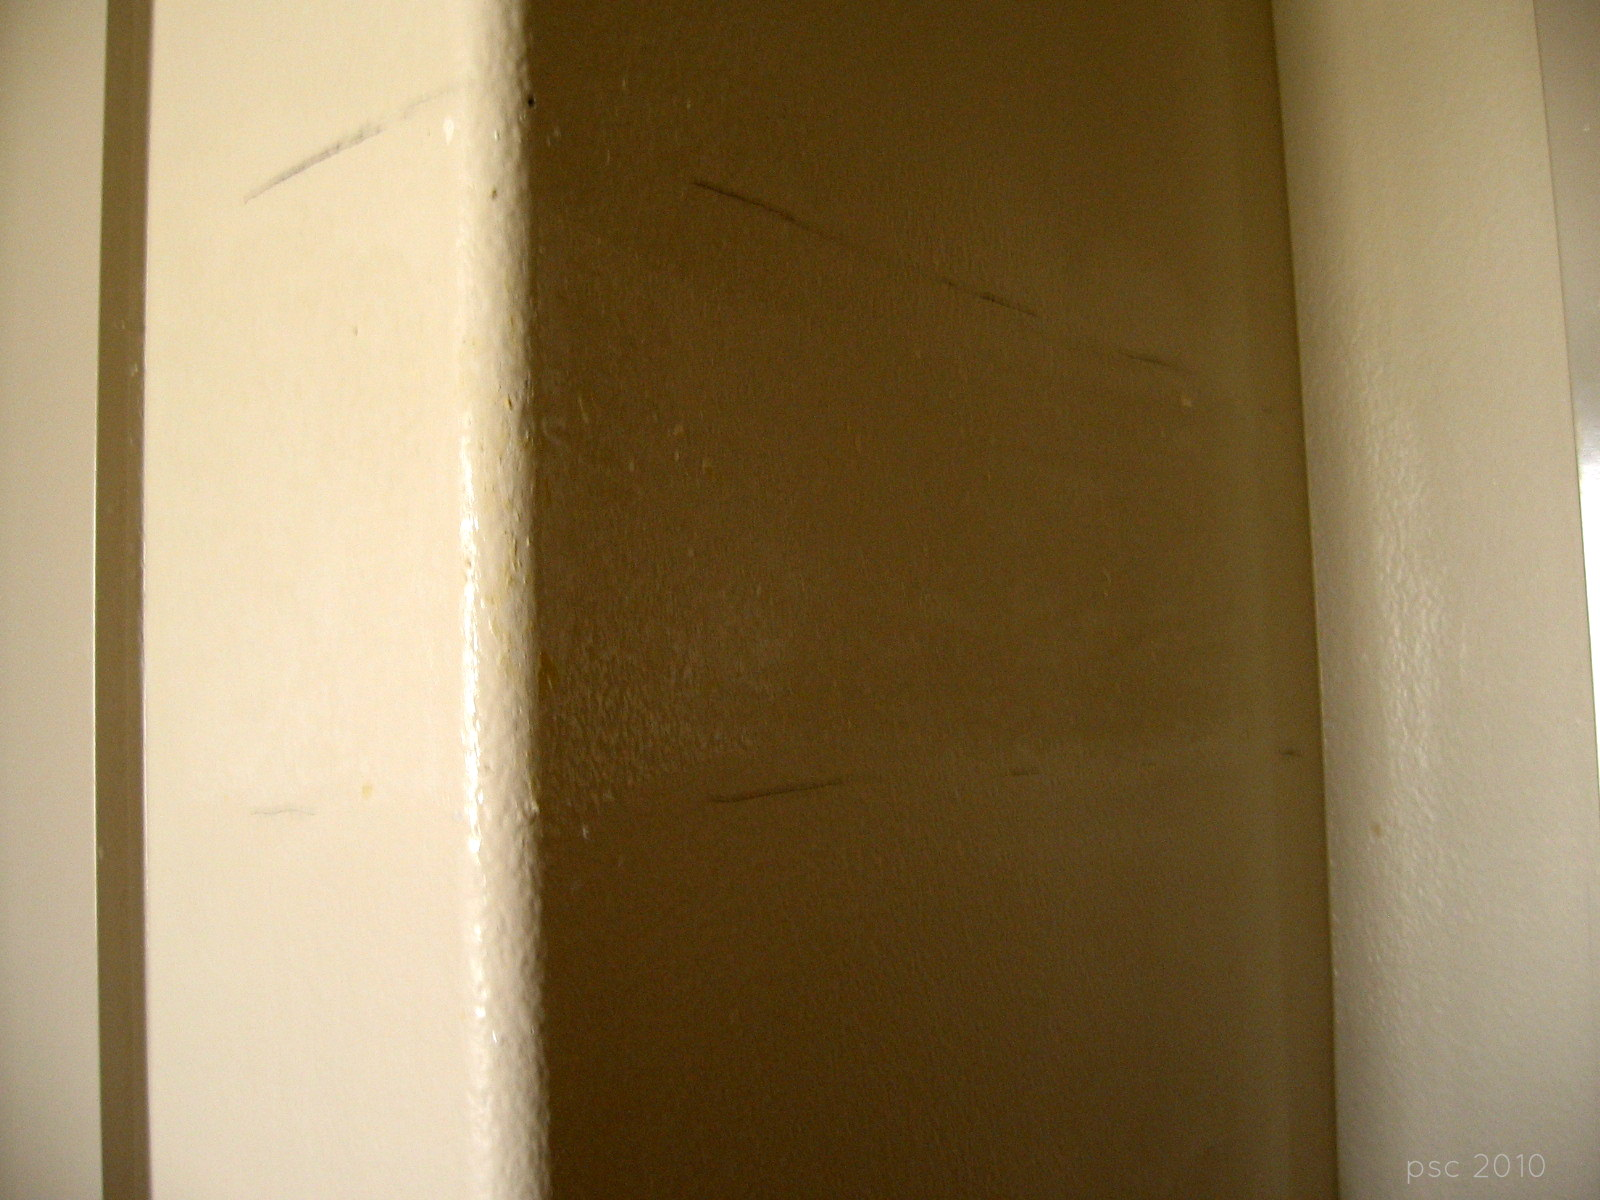 Wallpaper Hanging and Wallpaper Removal How To Wallpaper removal tips 1600x1200